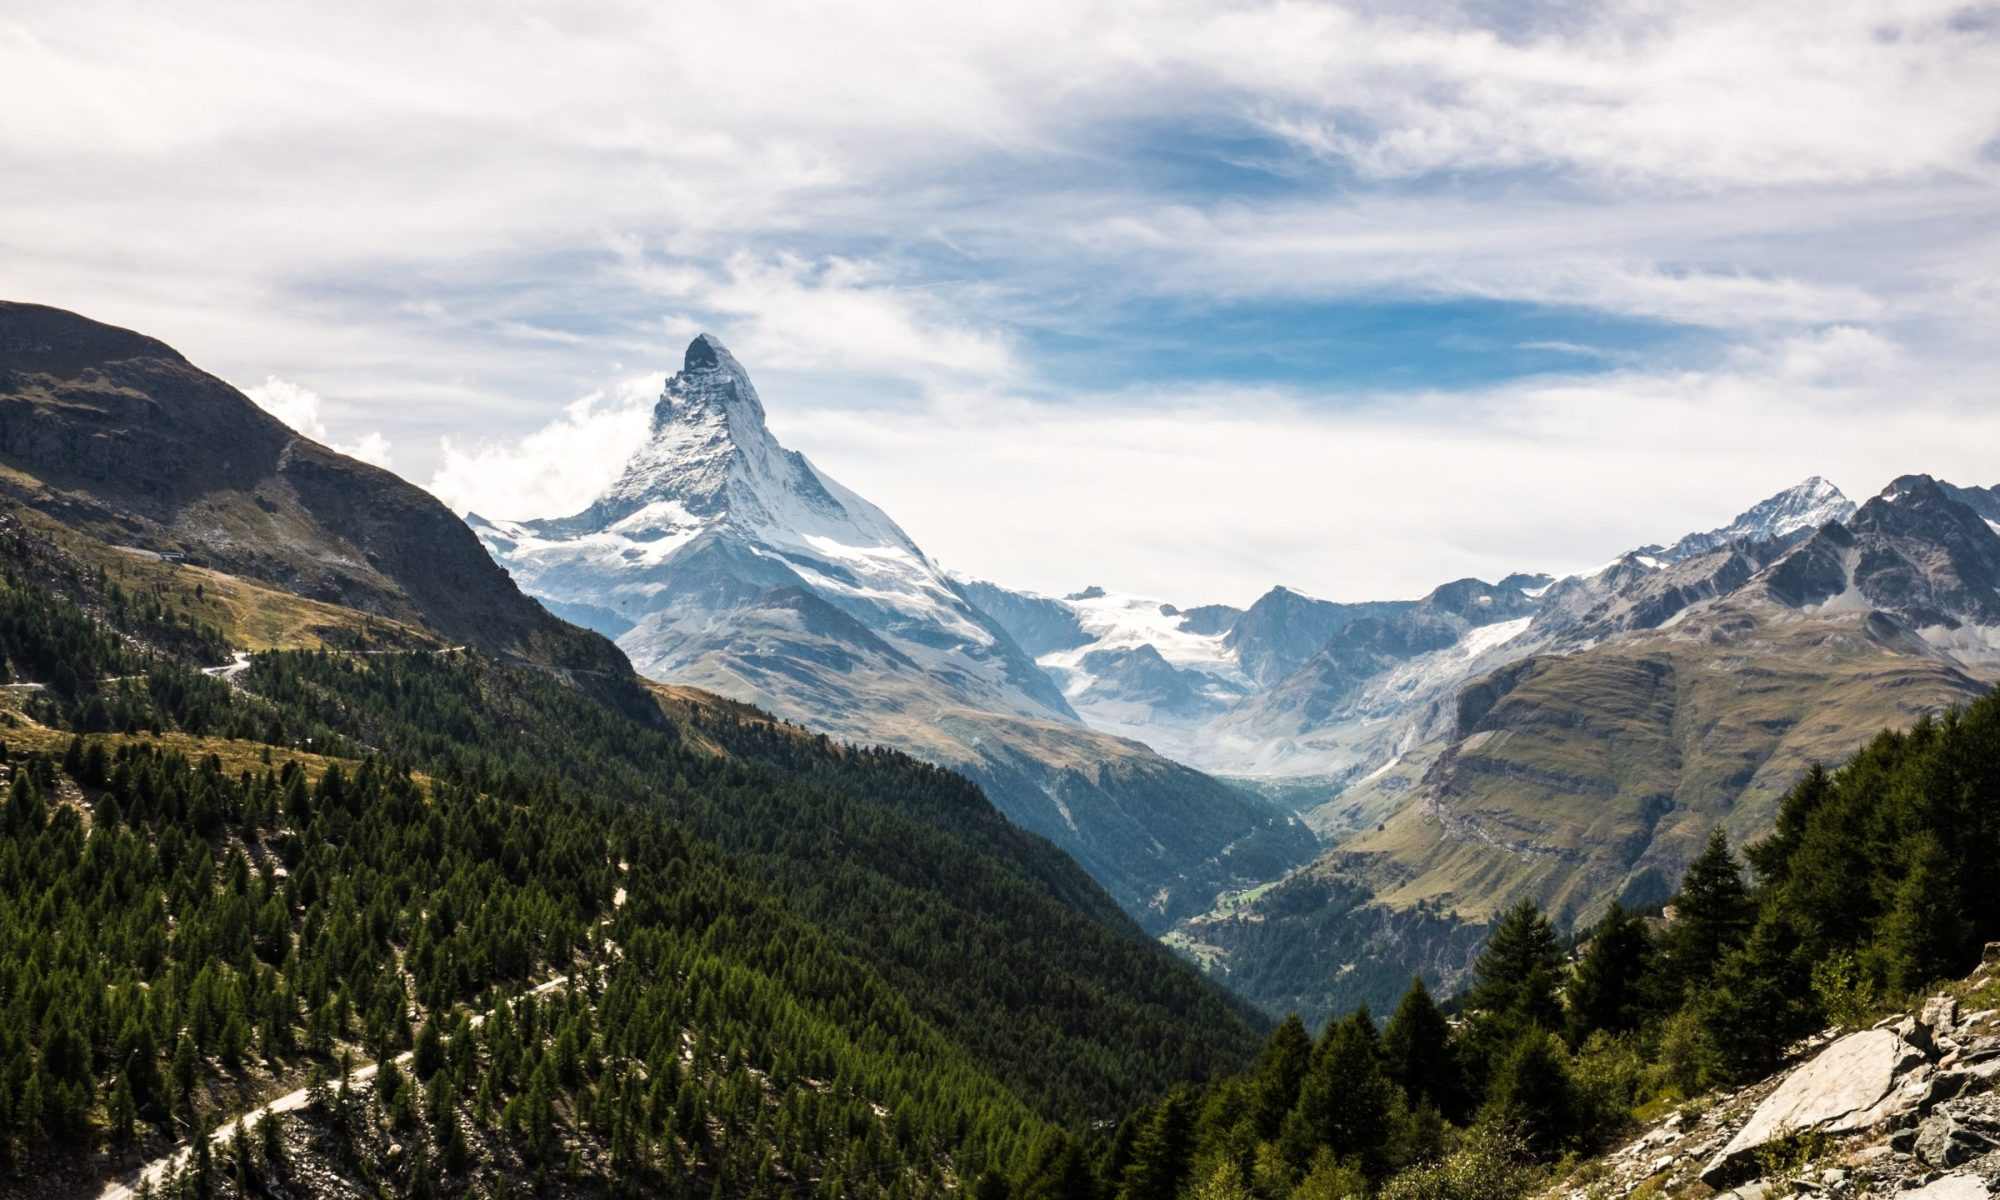 Matterhorn by Chris Holgersson. Thanks to a DNA test confirmation, the remains found near the Matterhorn where matched to a Japanese climber.